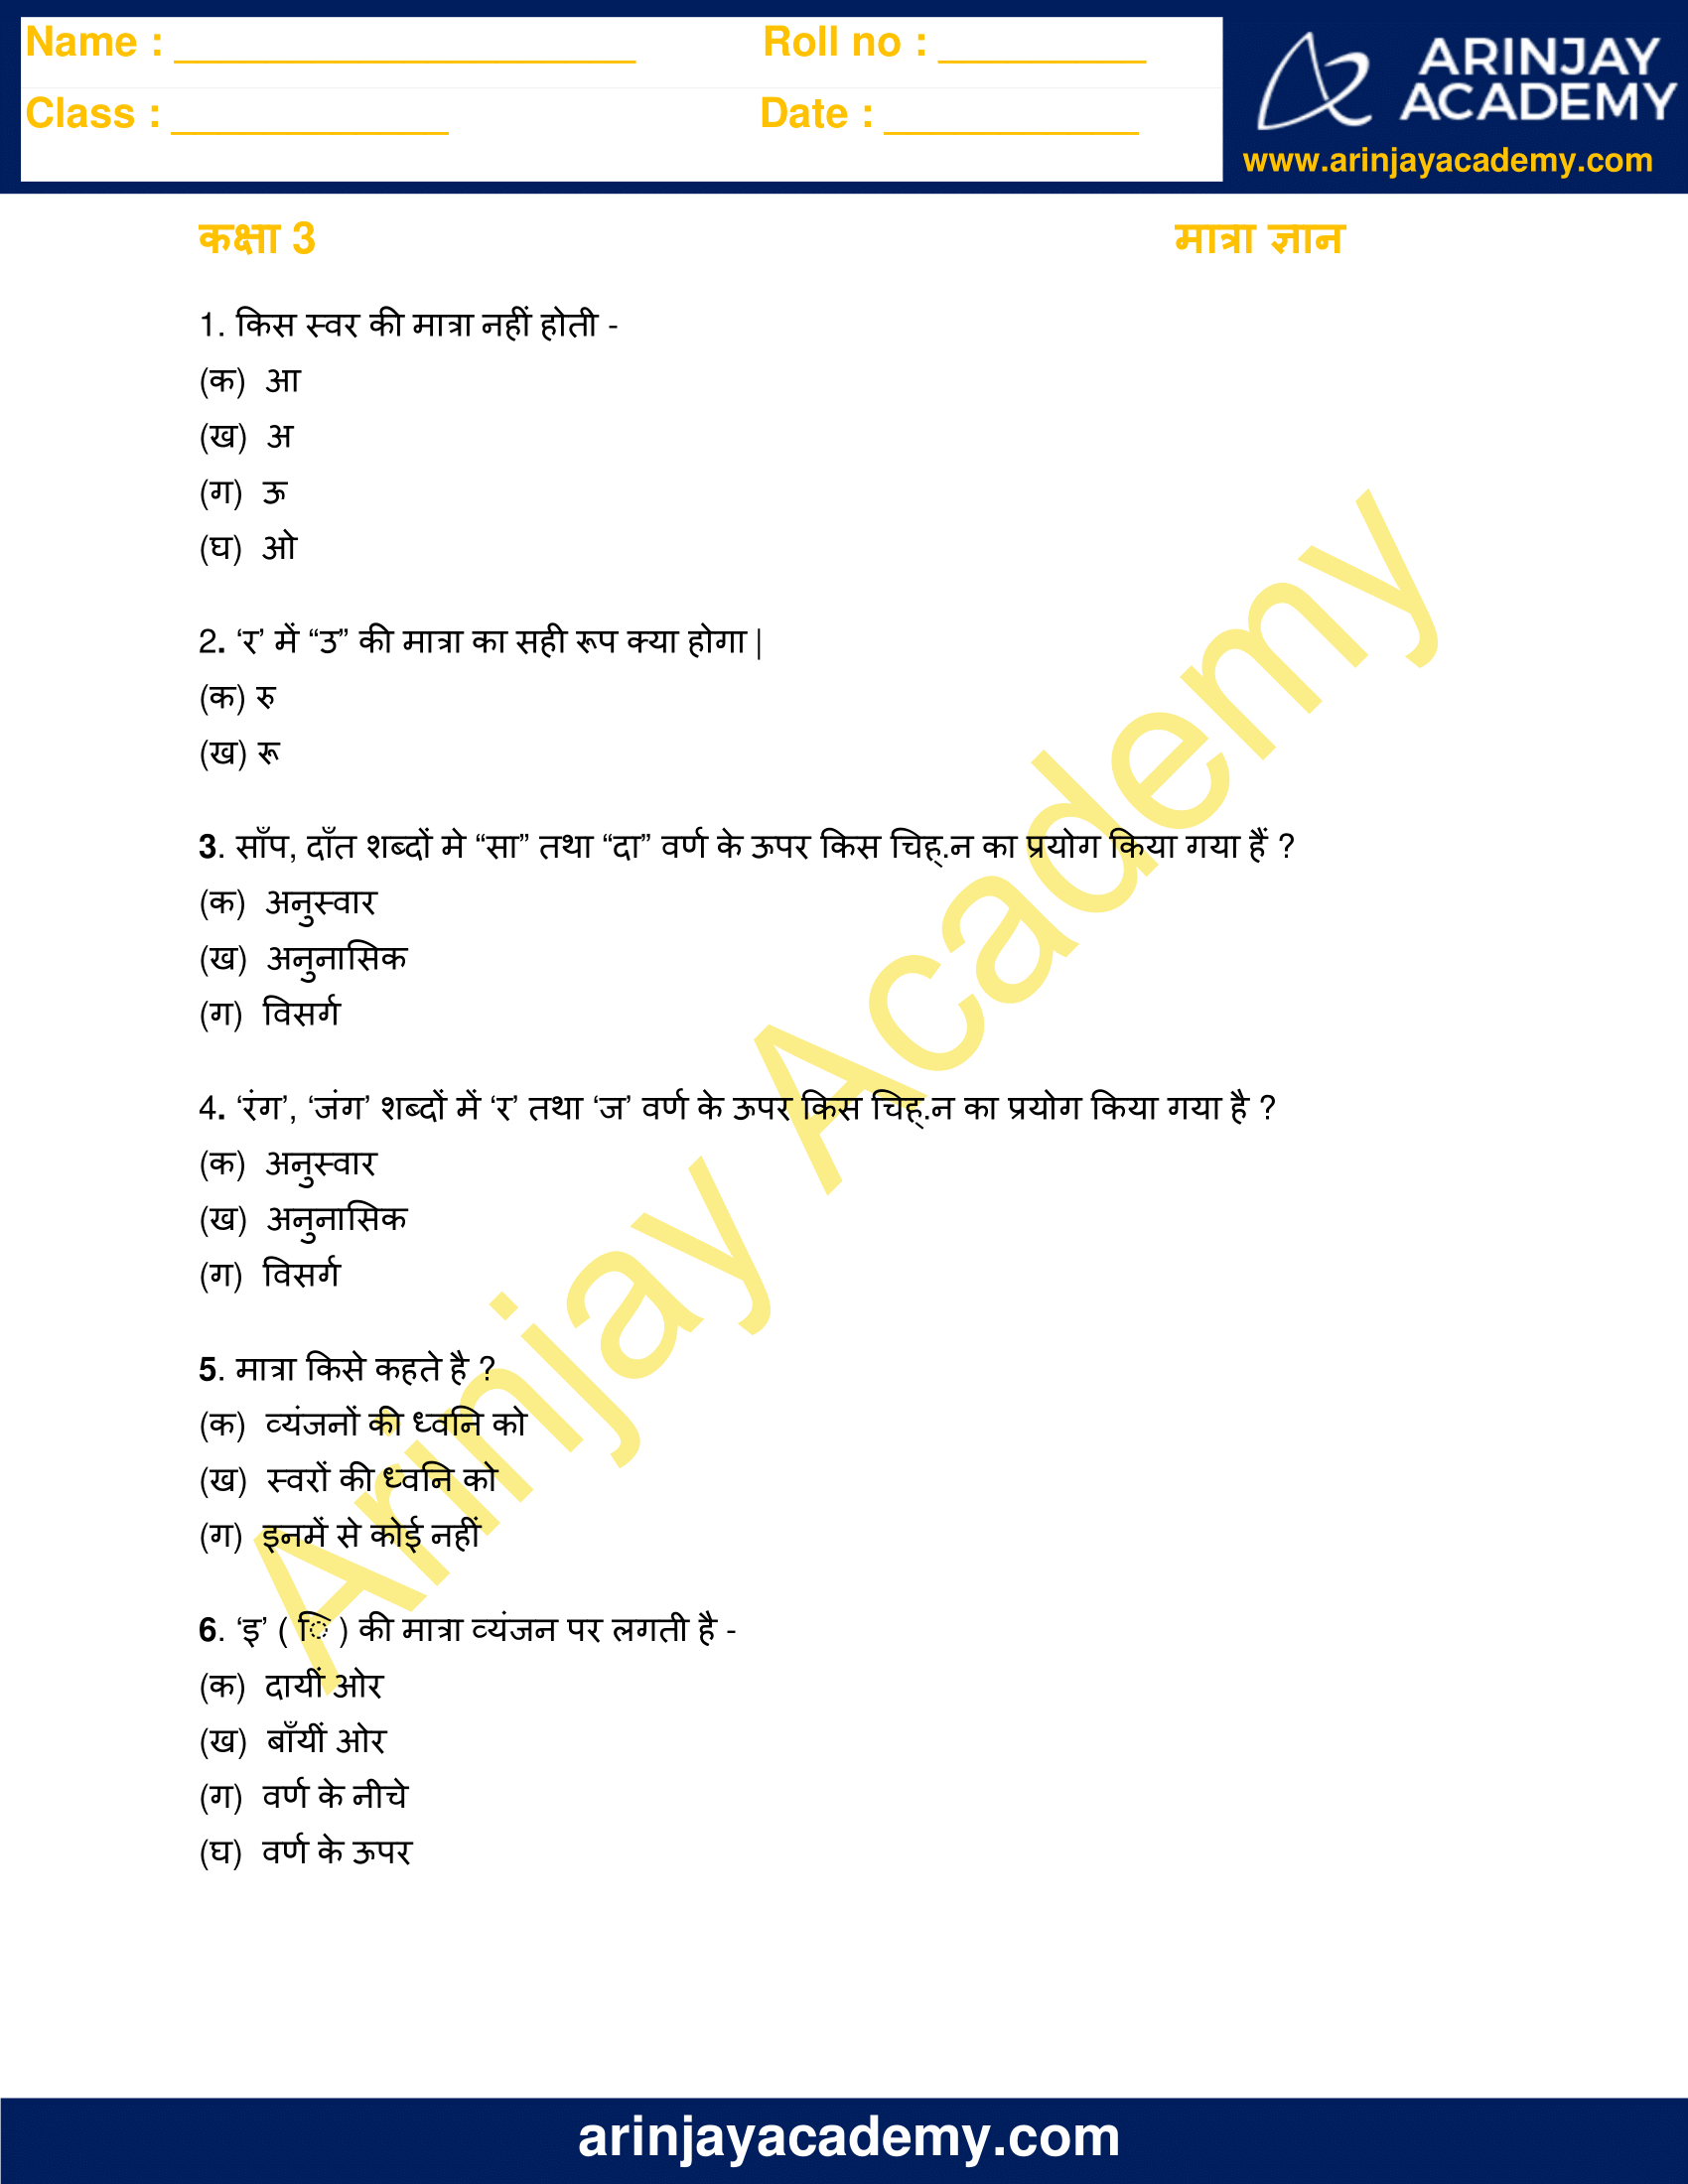 Hindi Matra Gyan Worksheets for Class 3 image 1